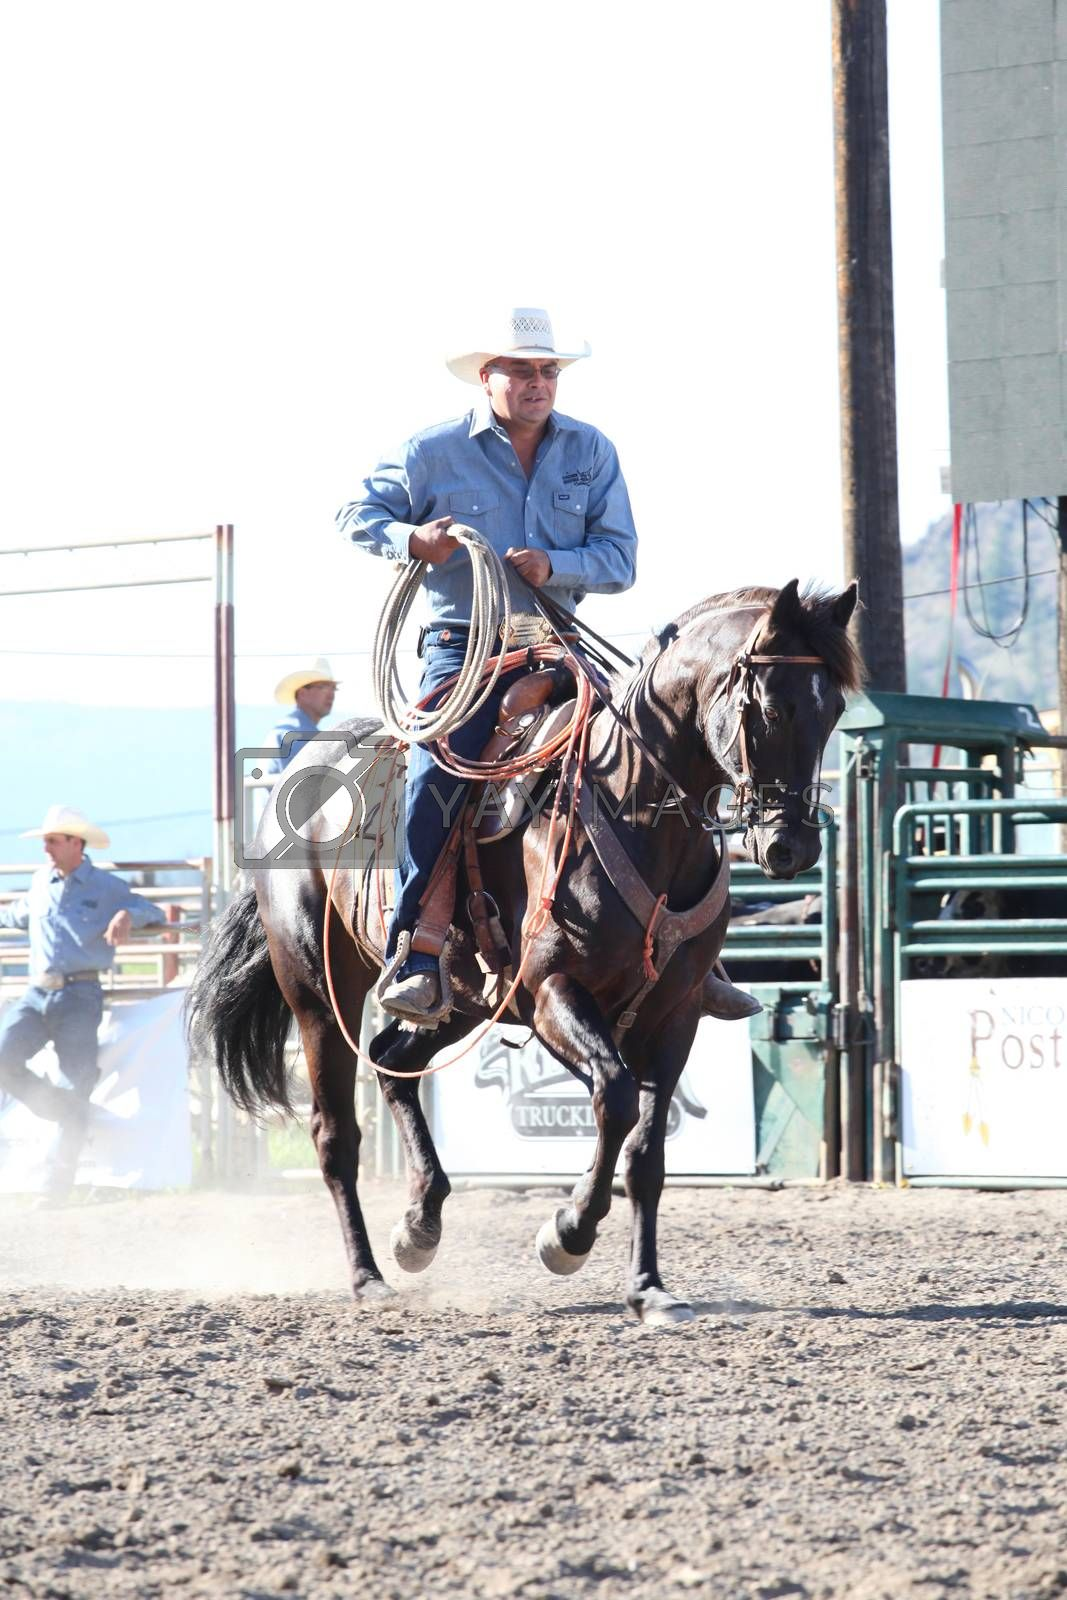 MERRITT, B.C. CANADA - May 30, 2015: Horseman rounding up bulls at The 3rd Annual Ty Pozzobon Invitational PBR Event.